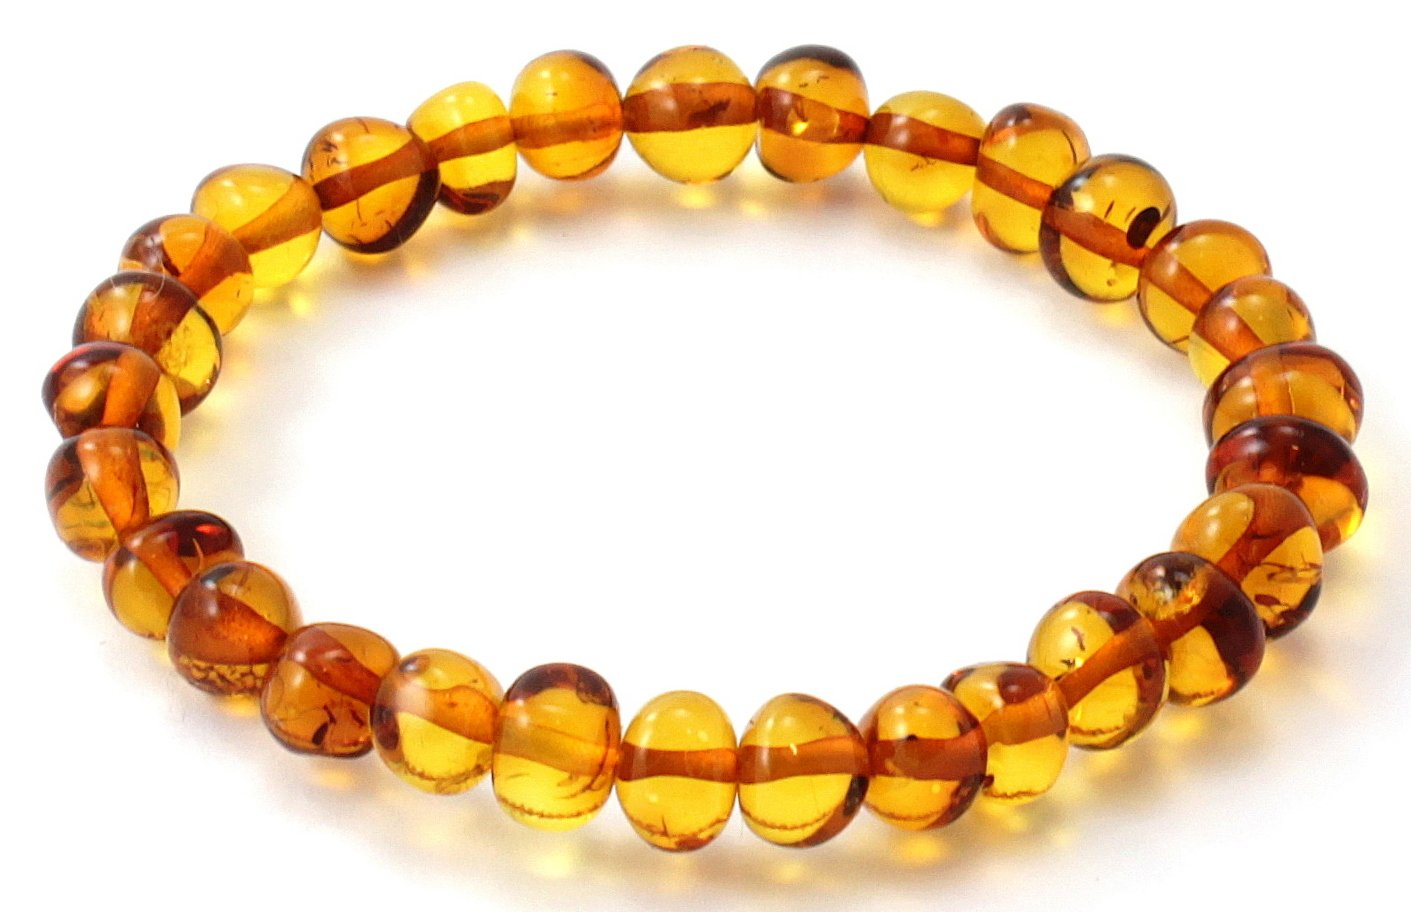 Baltic Amber Bracelet - Adult Size (Women and Men) - 7 inches - Made on Elastic Band - Polished Baltic Amber Beads - BoutiqueAmber (7 inches, Cognac)